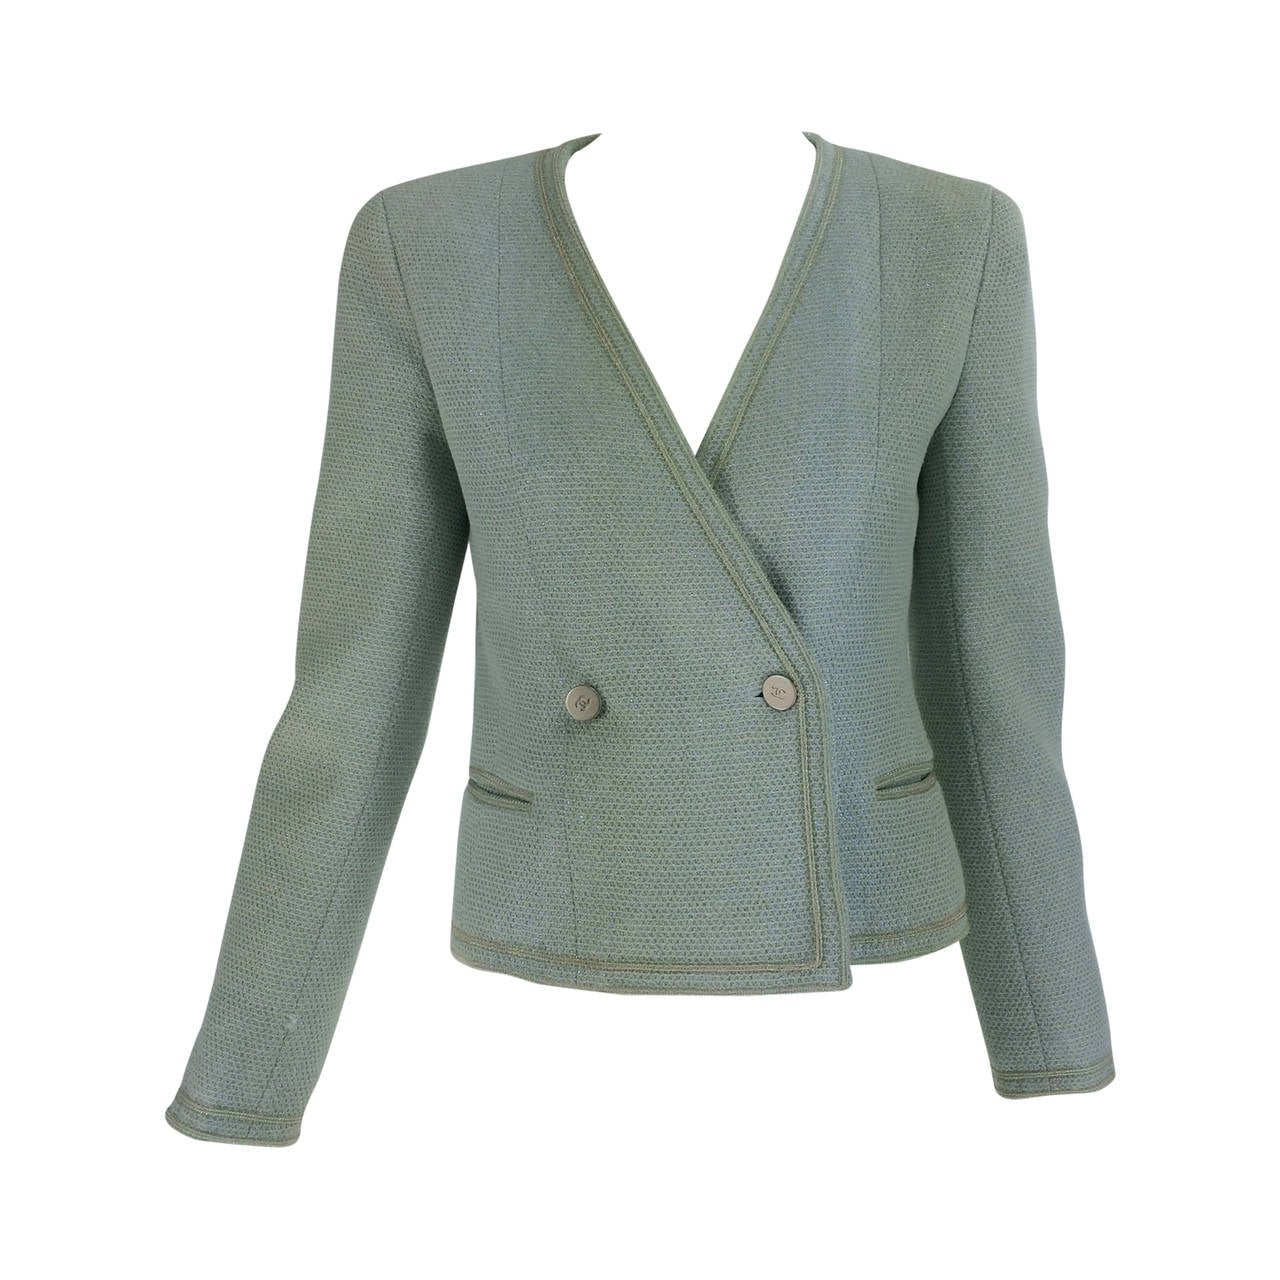 Chanel mint green glitter tweed cropped jacket 2000